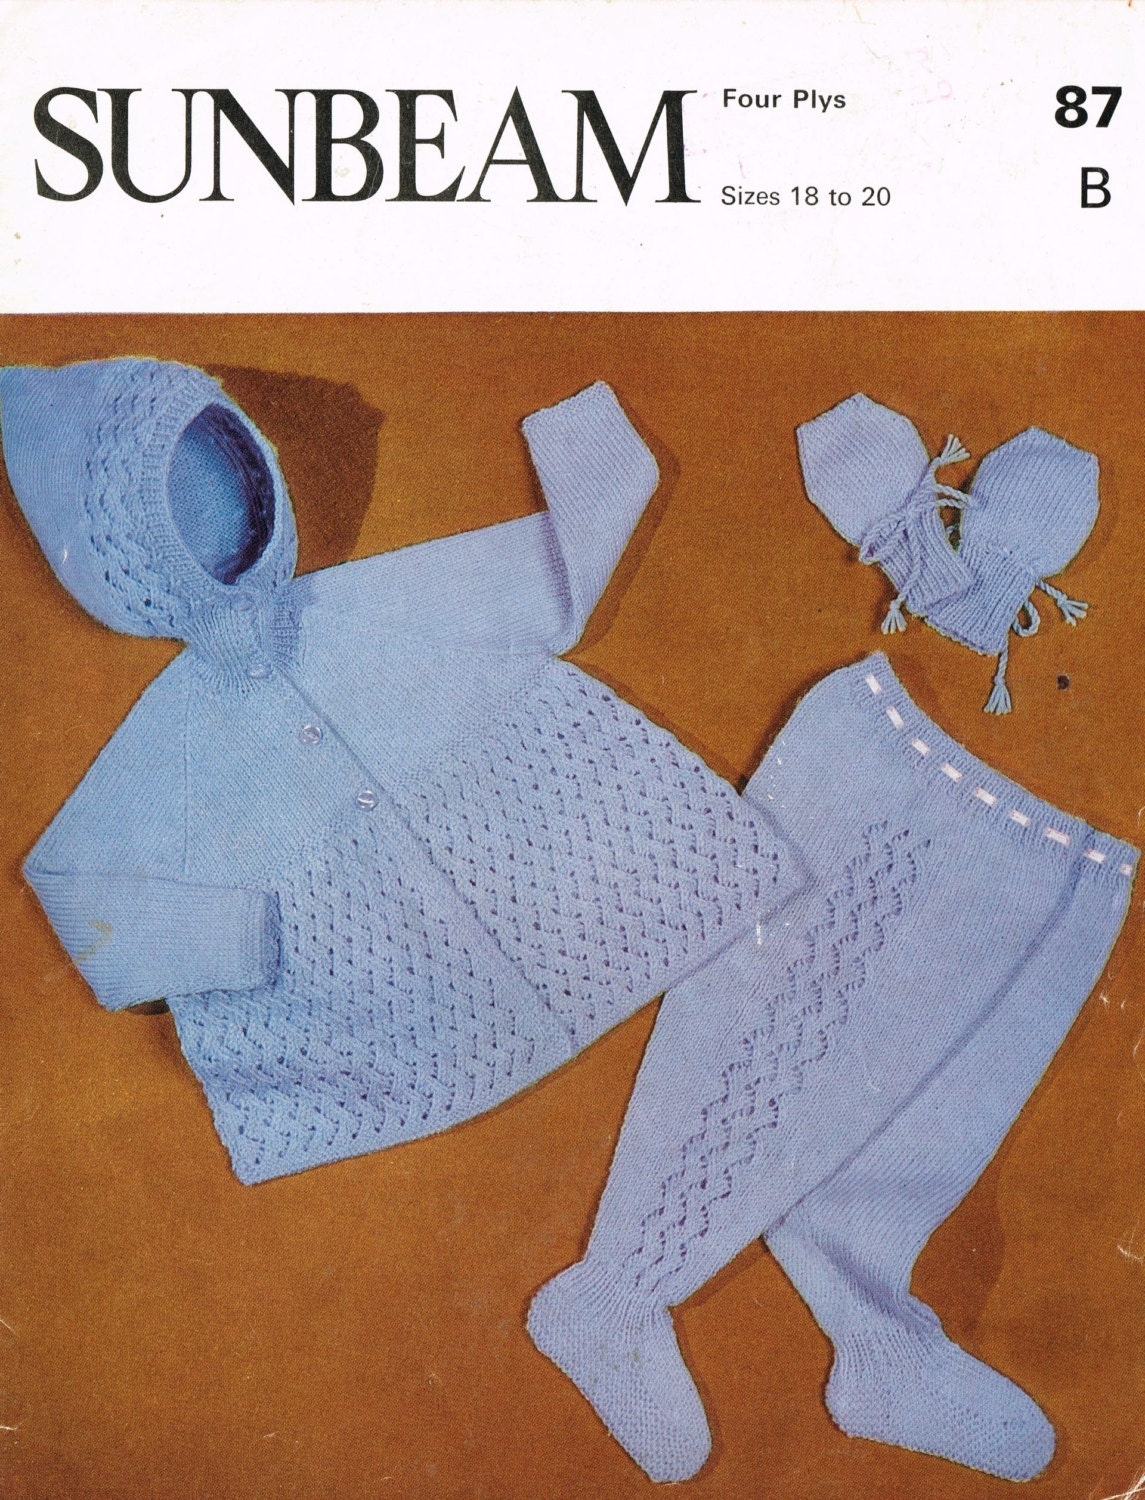 Sunbeam Knitting Patterns : Sunbeam 87 baby pram suit vintage knitting pattern PDF